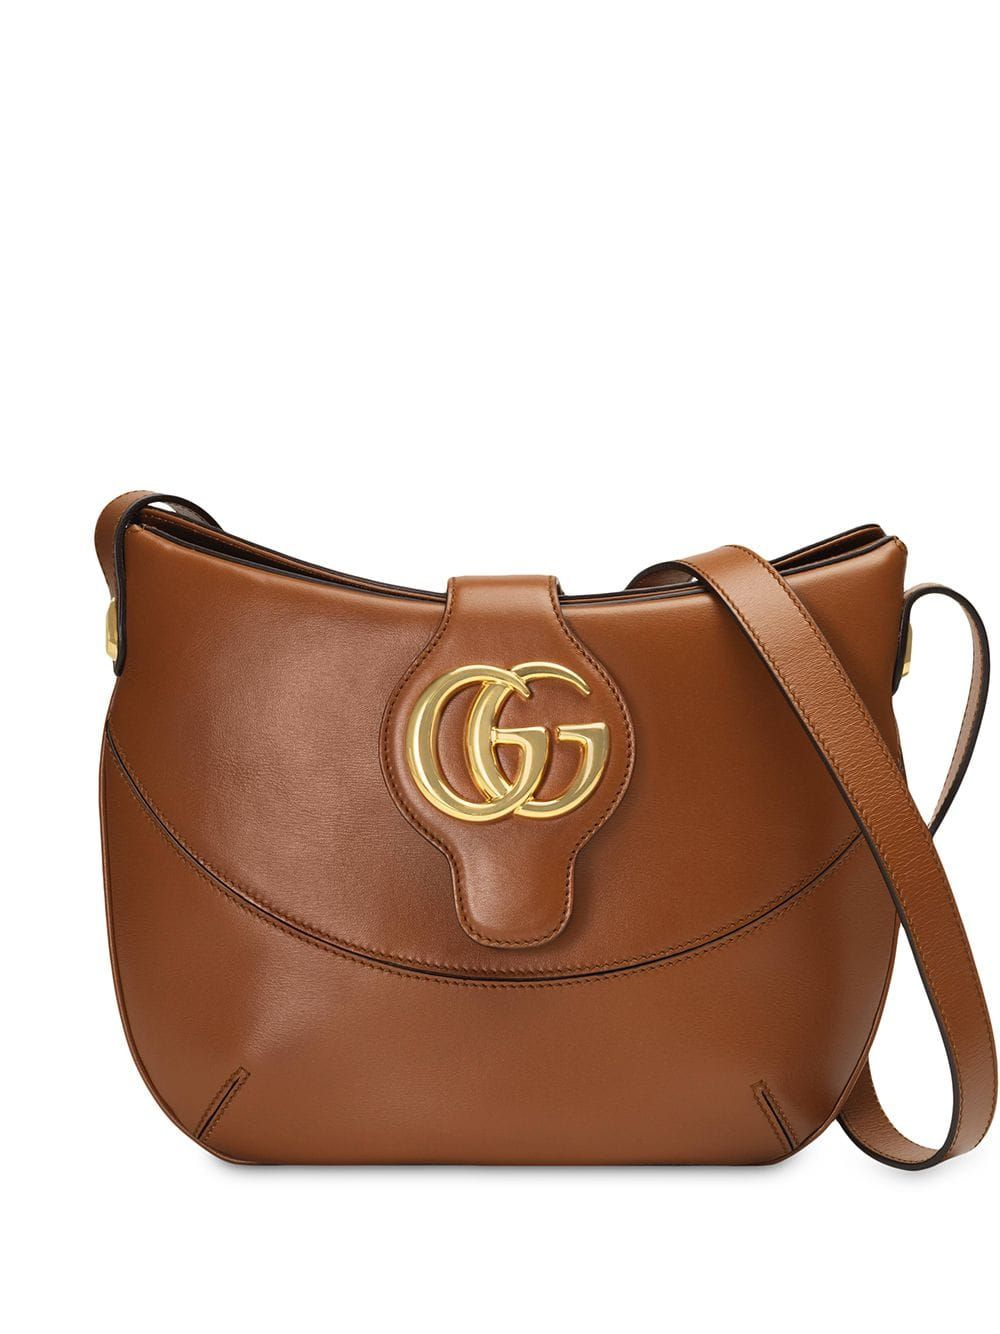 2cc7d0481 Gucci Arli medium shoulder bag - Brown in 2019 | Products | Leather ...